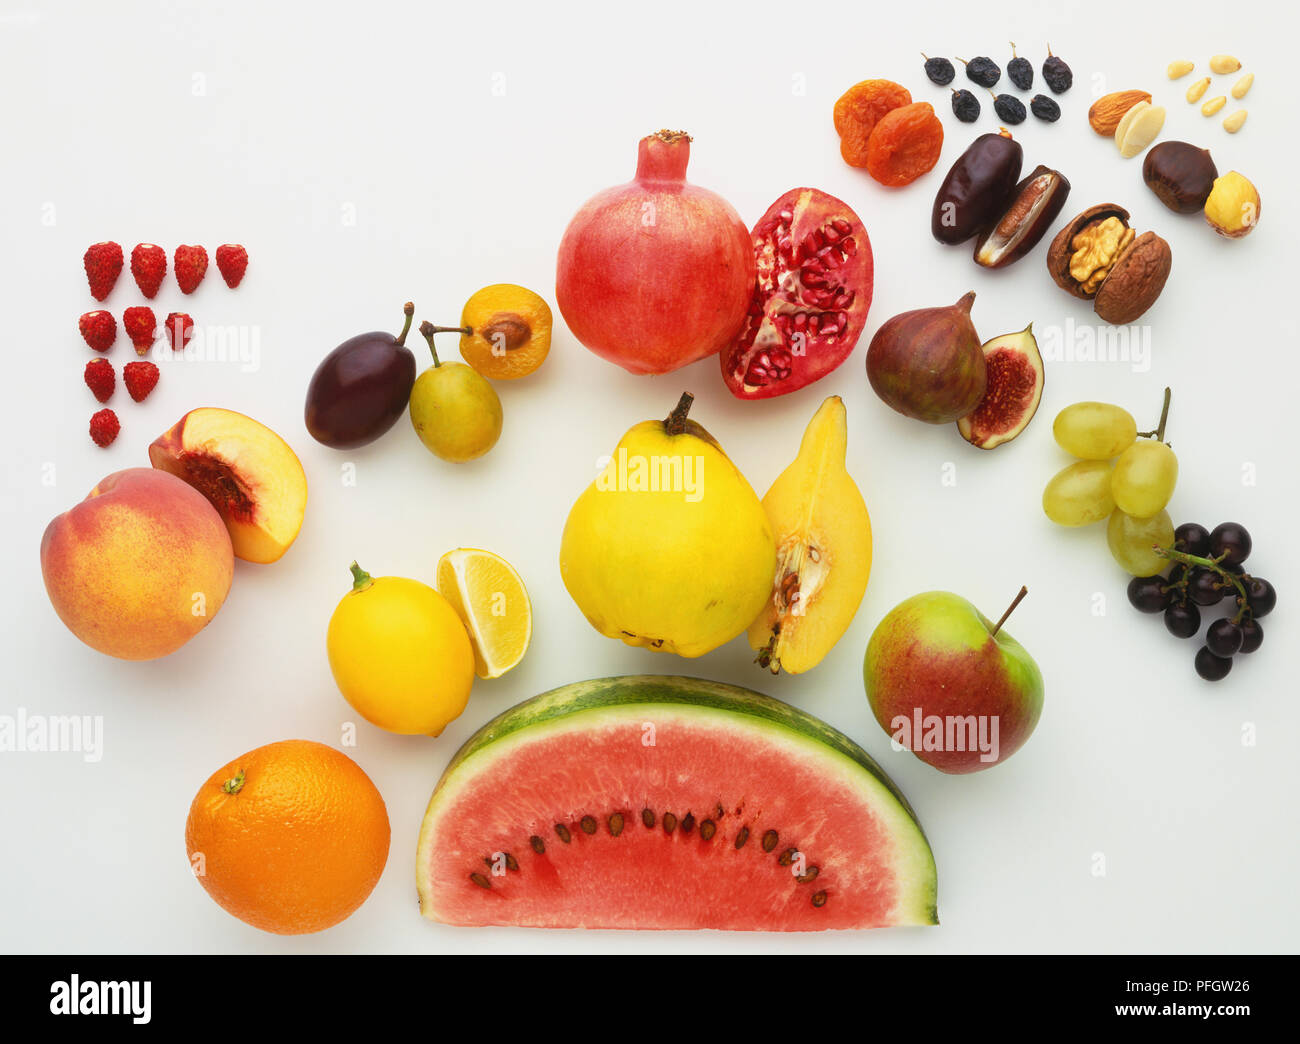 Colourful selection of fruits and nuts, close up. Stock Photo